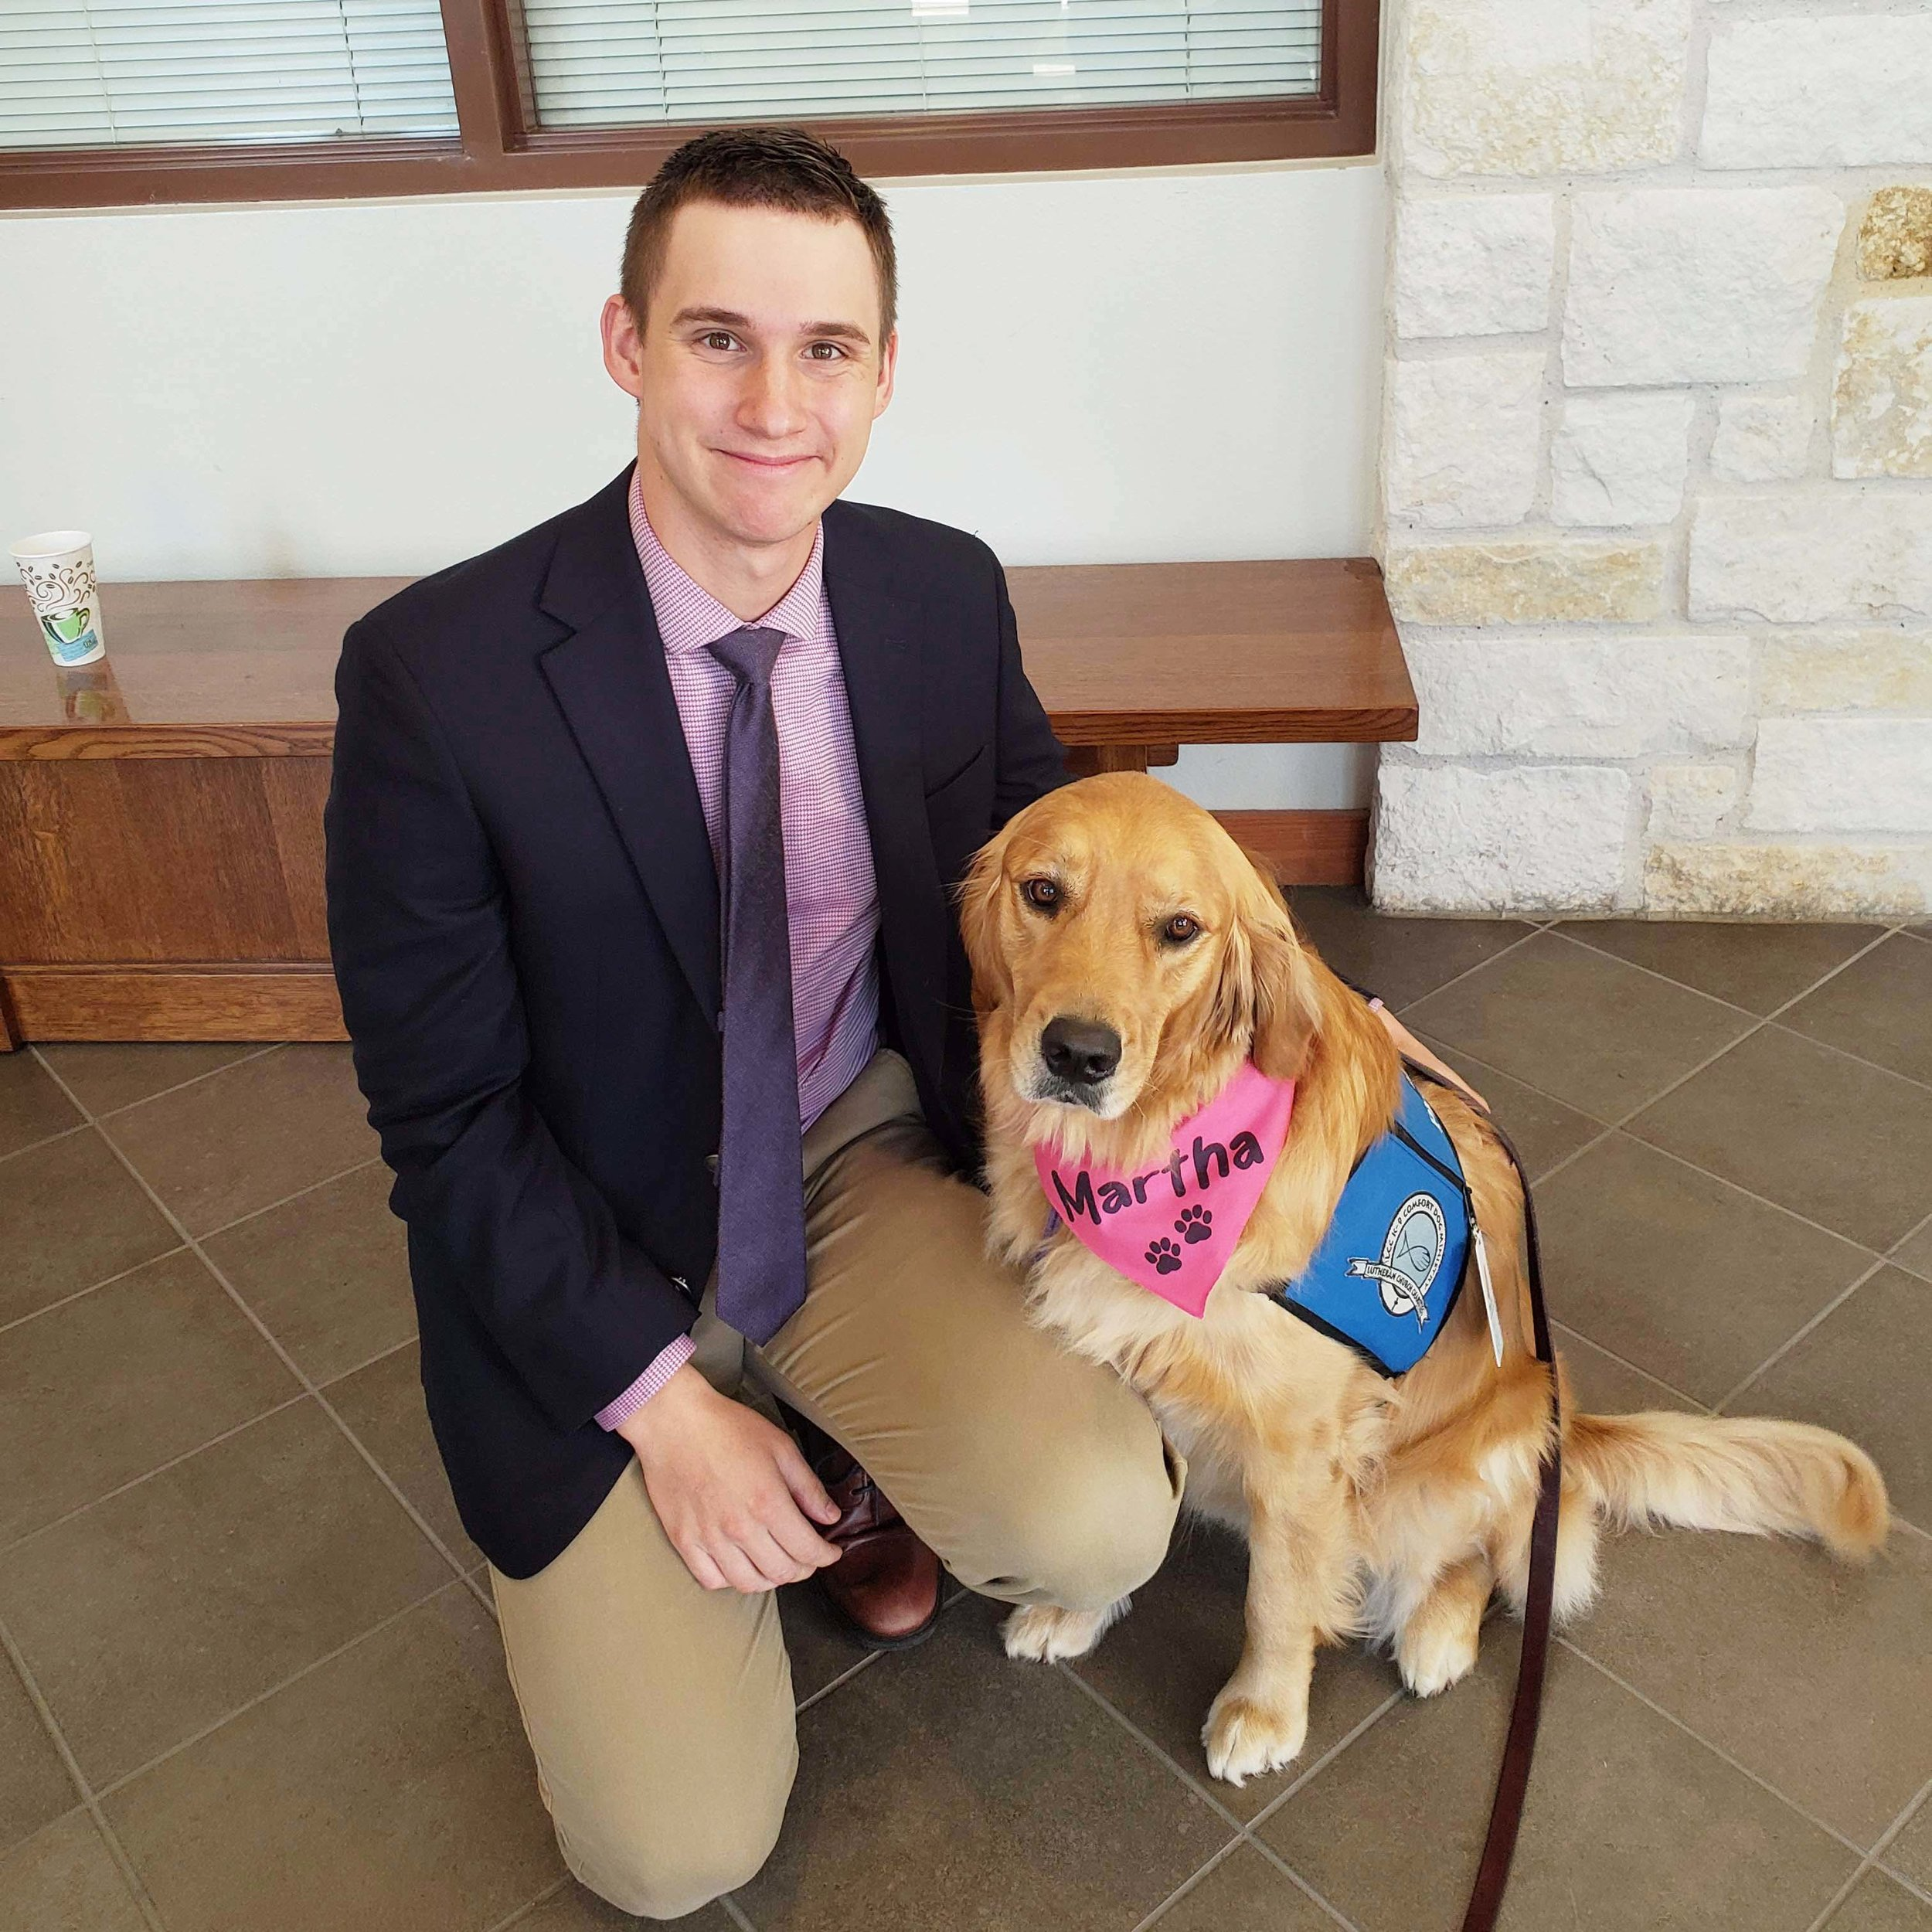 Supporting Comfort Dogs - We are partnering with the Lutheran Church Charities to help support their K-9 Comfort Dog Ministry